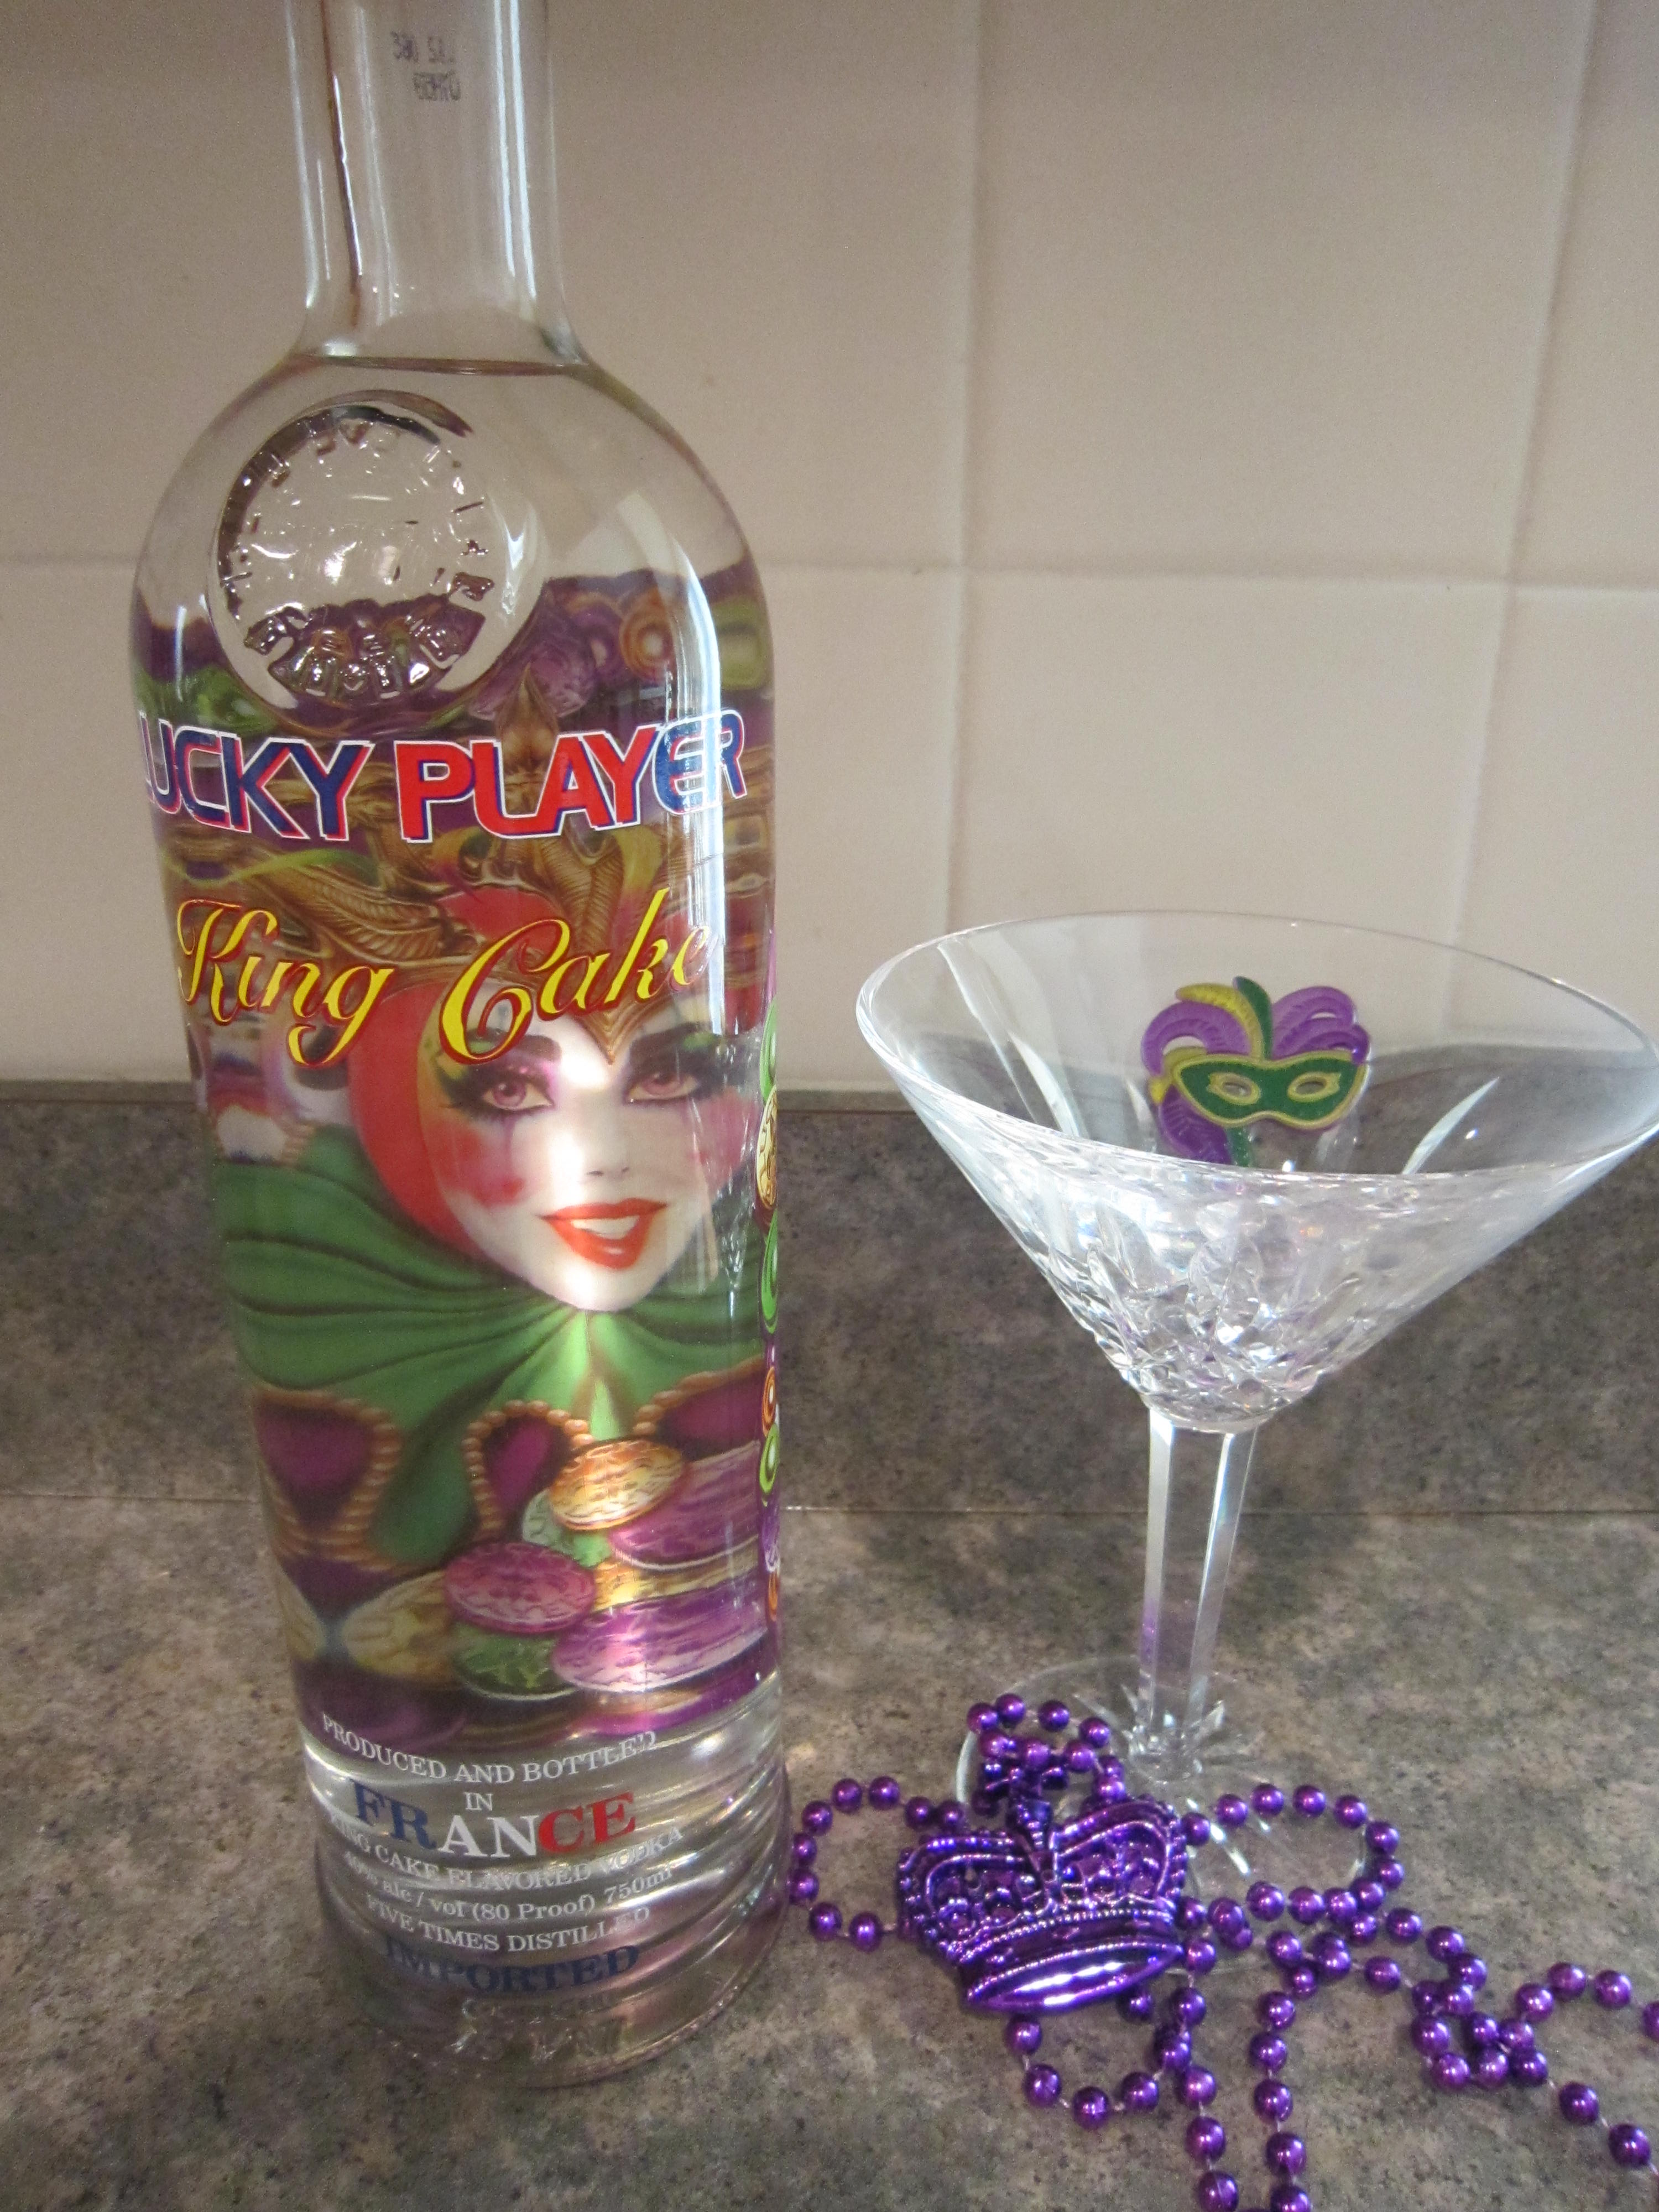 lucky player king cake vodka for sale online